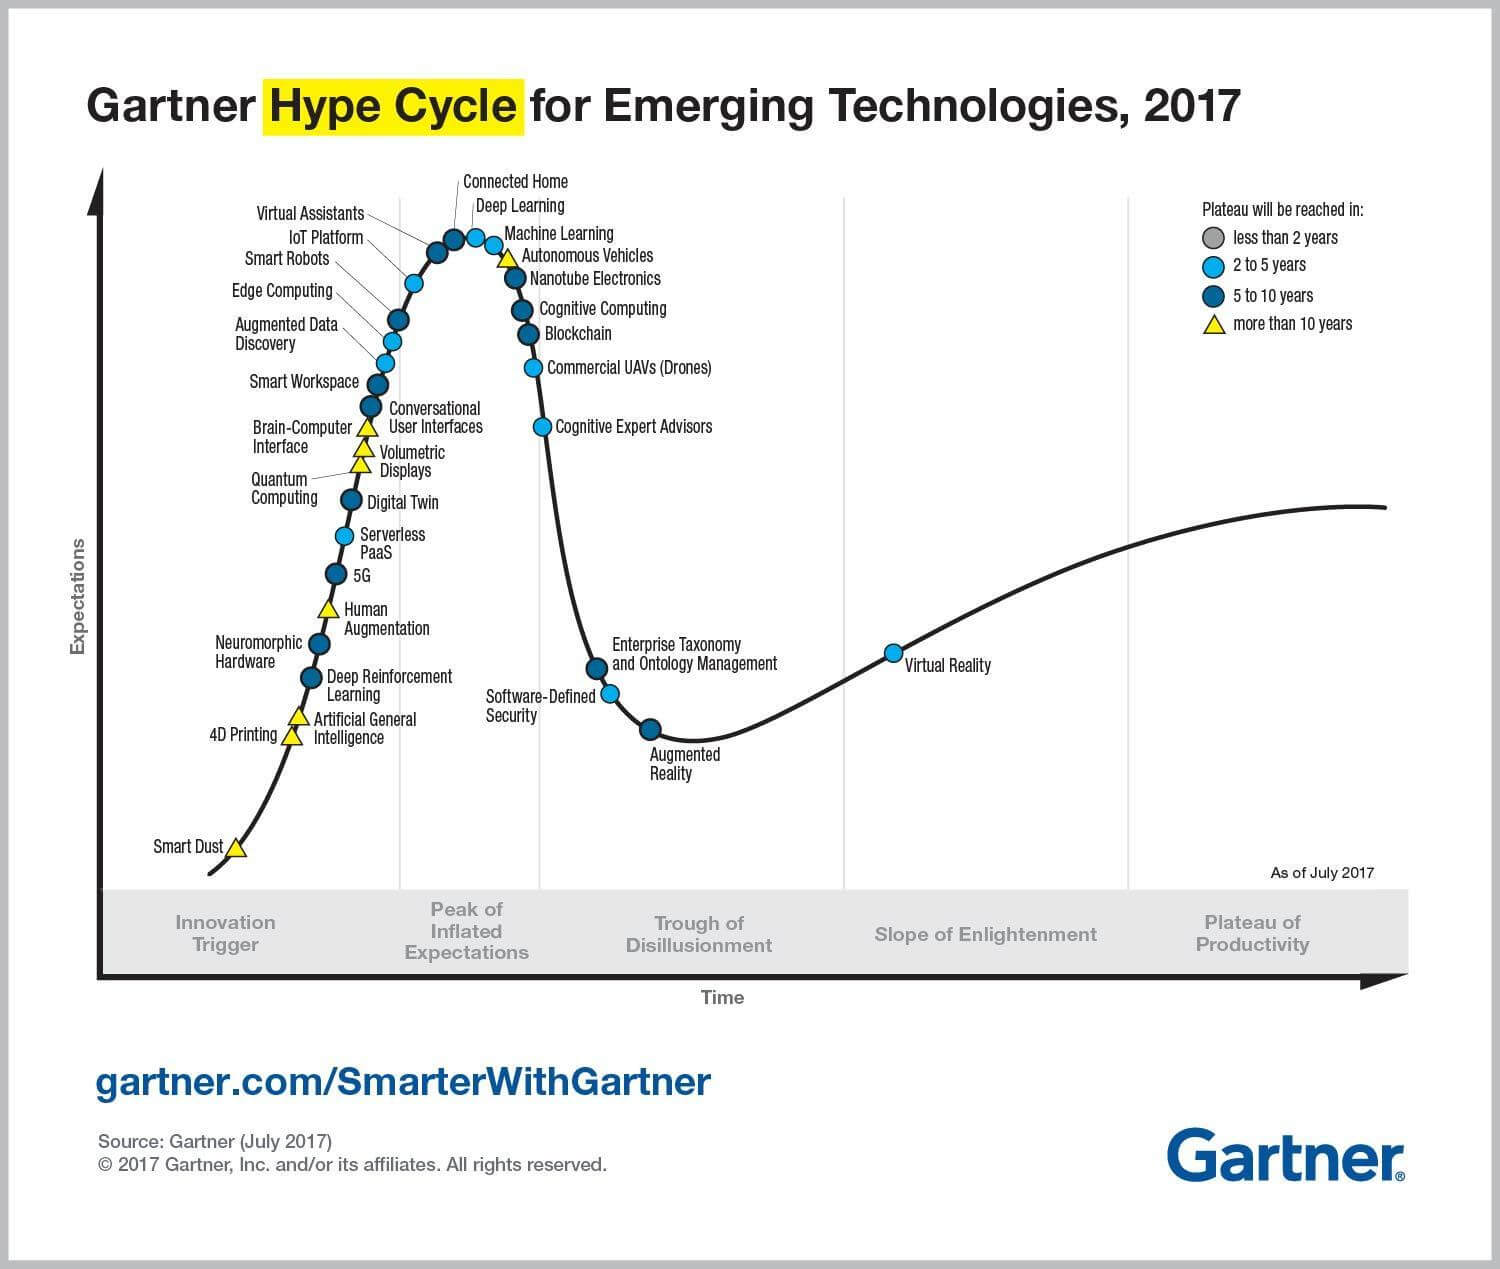 Gartner hypecycle